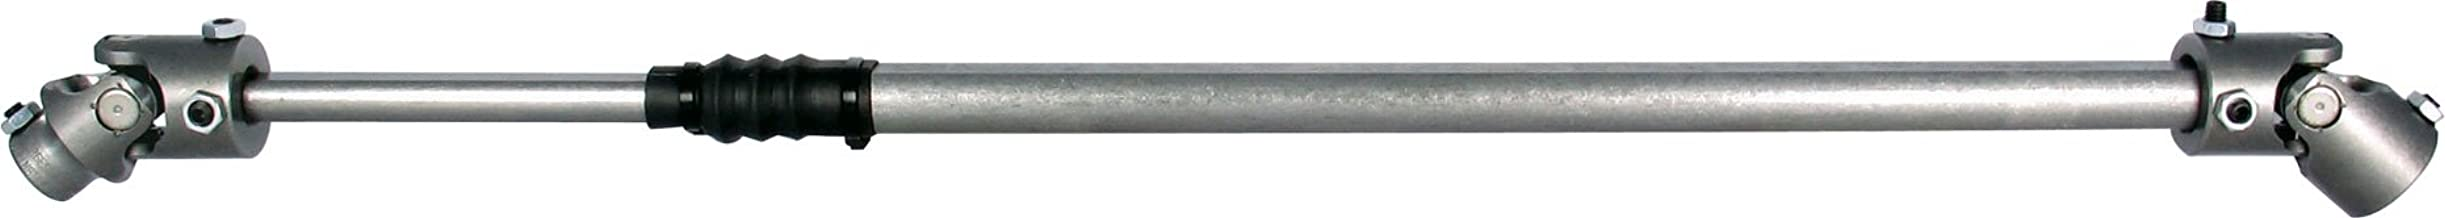 Borgeson 000910 Power Steering Shaft Assembly